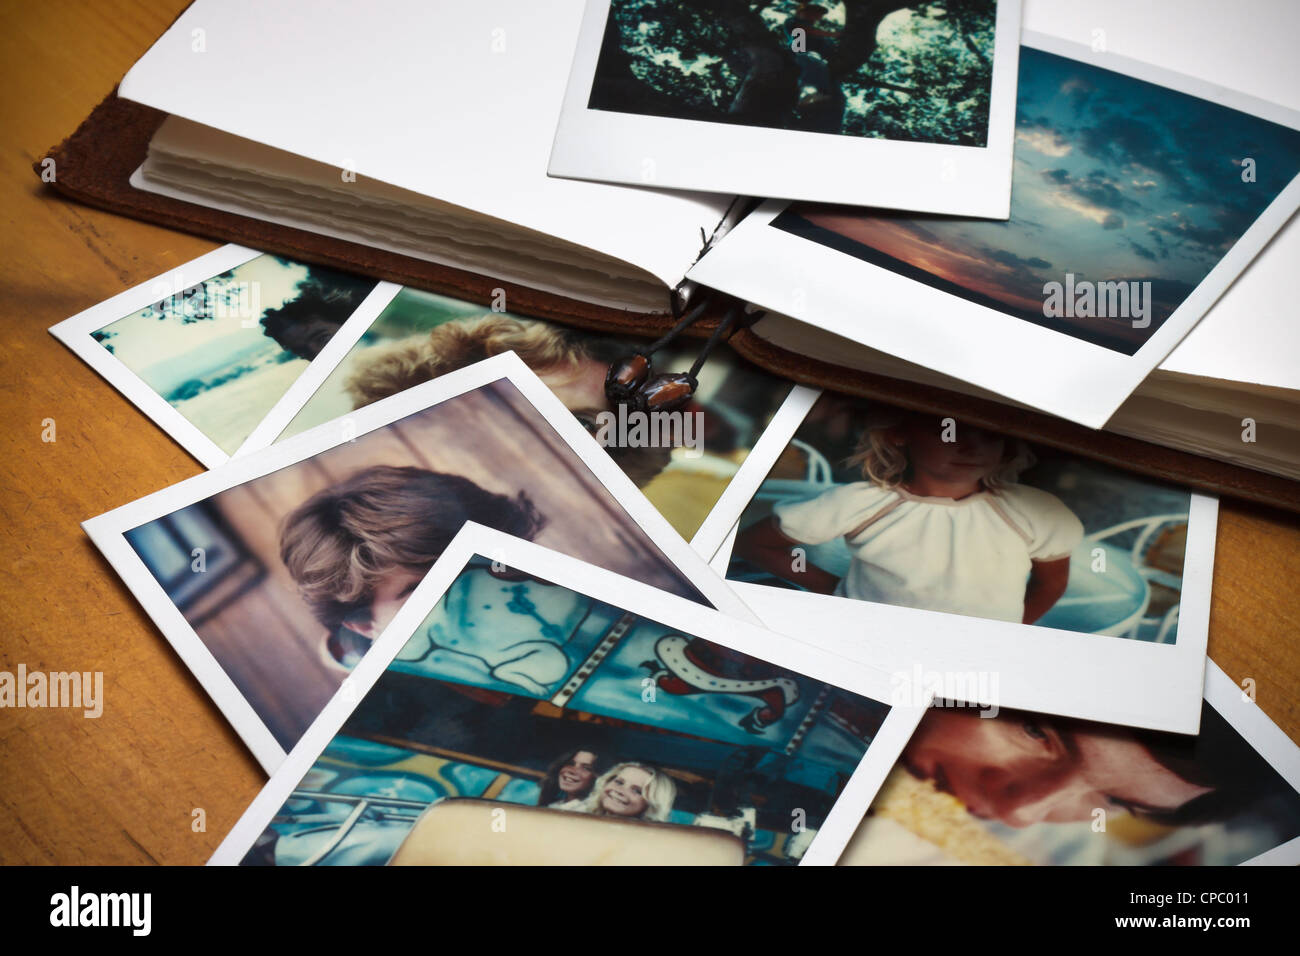 A pile of old pictures and a journal to document memories of past times. - Stock Image